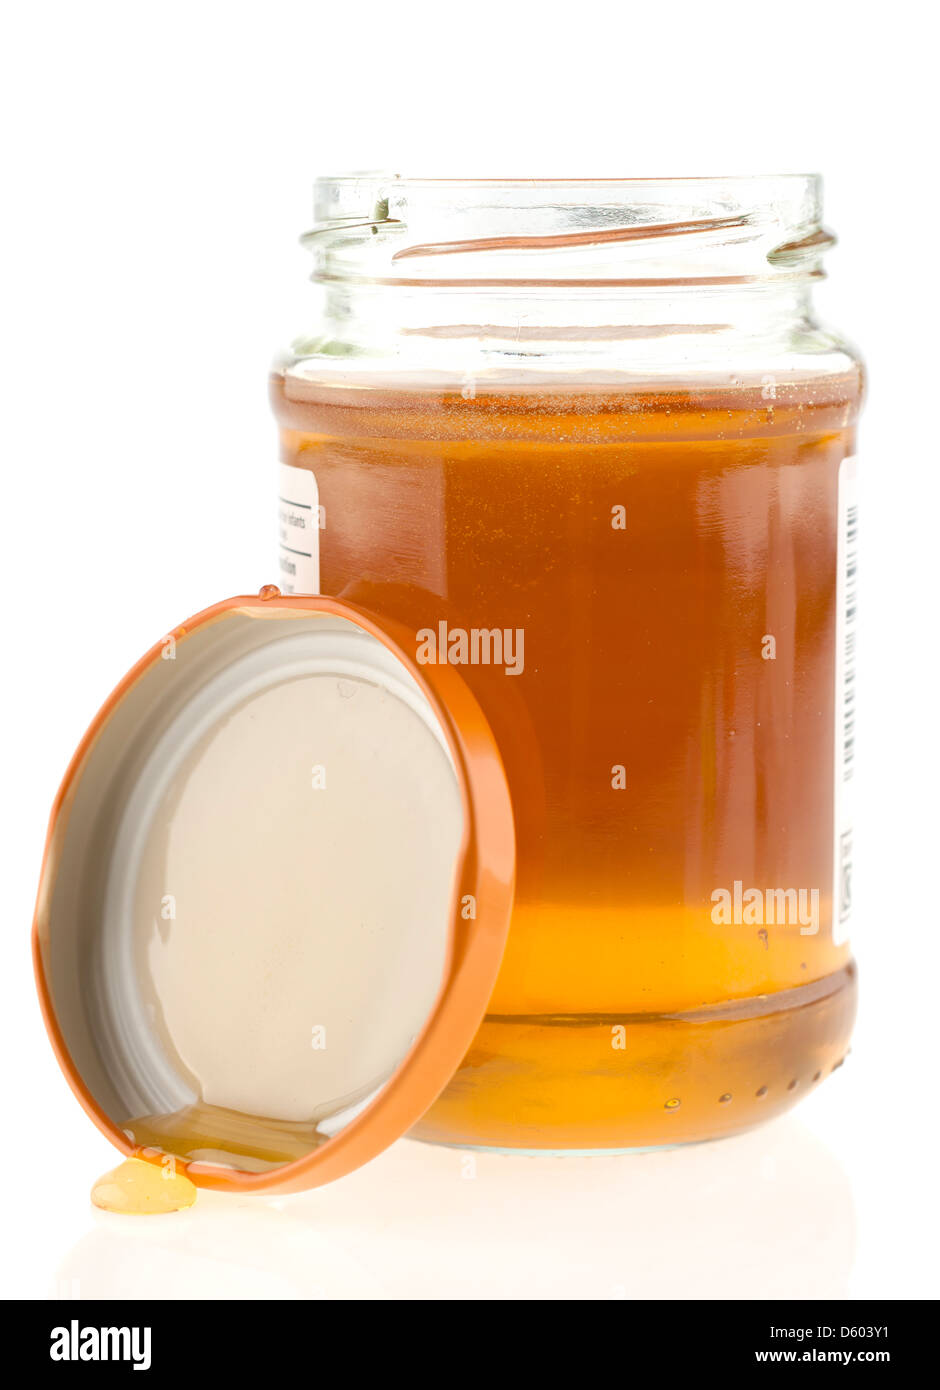 Jar of runny honey with the top removed - Stock Image